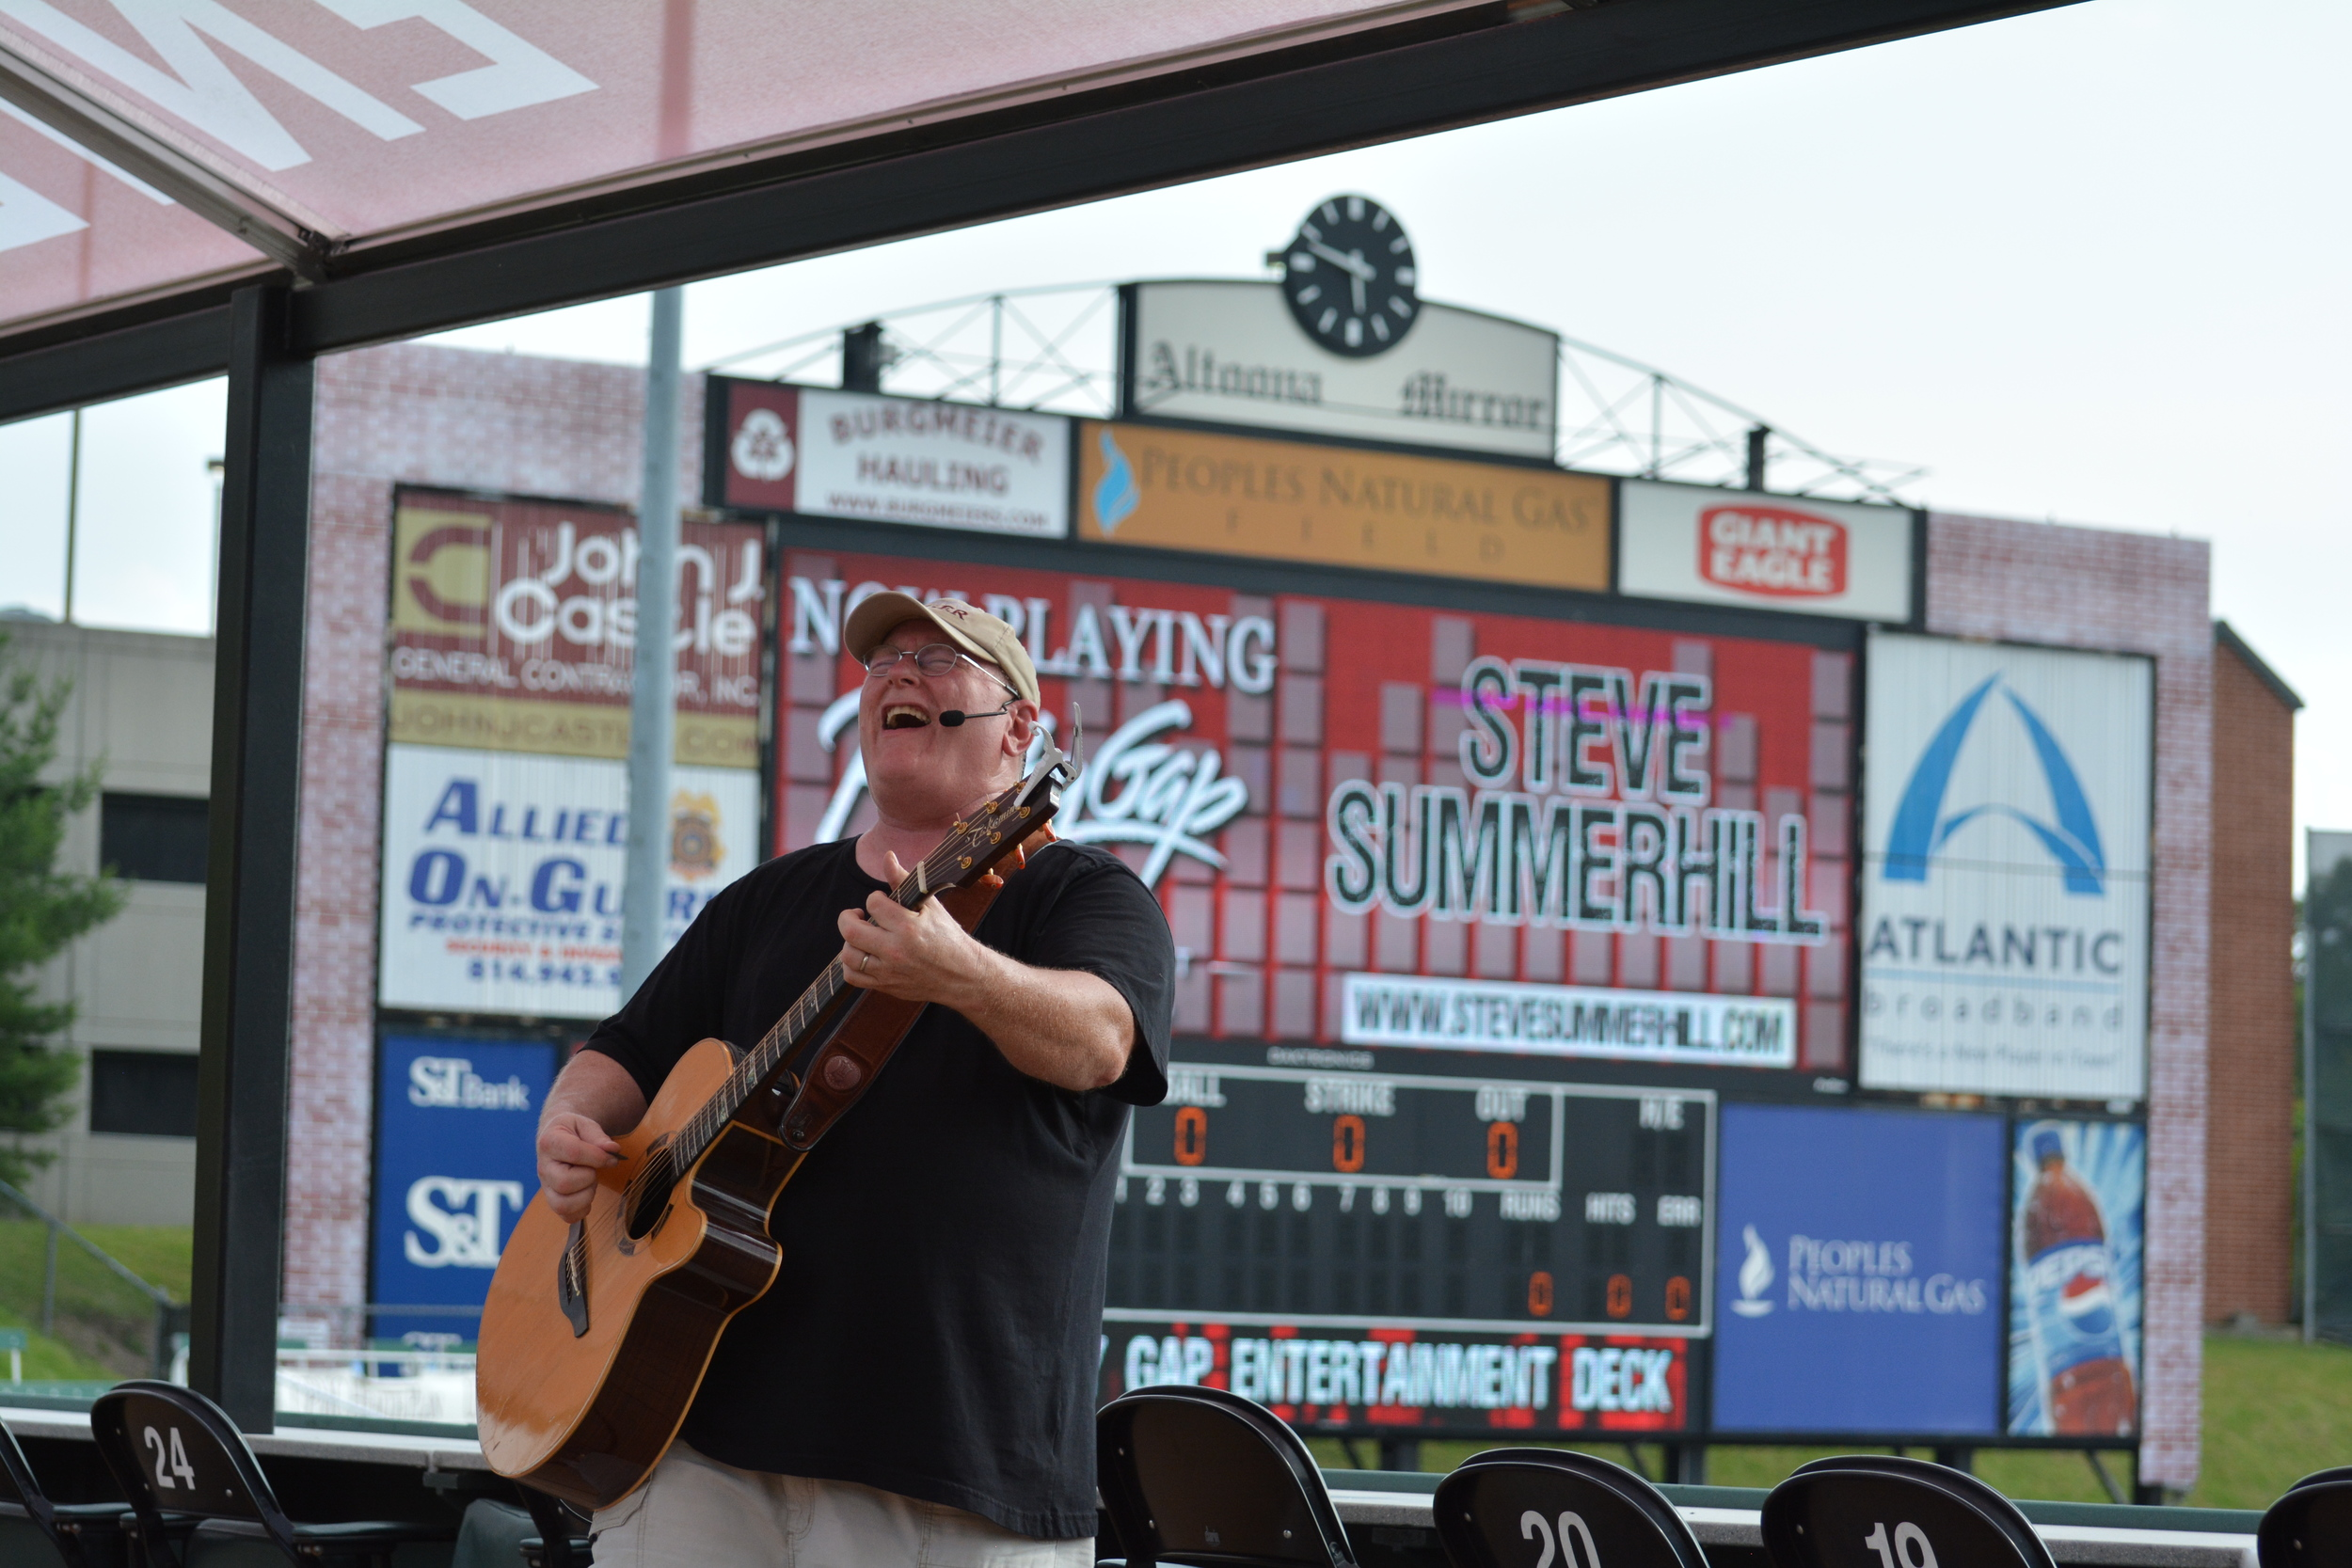 Had a great time at the Altoona Curve Baseball Park June 27. I played before the game on the entertainment deck. It was a beautiful evening and there was an unending supply of alcohol and food. Lots of smiling faces!  Click for more pictures